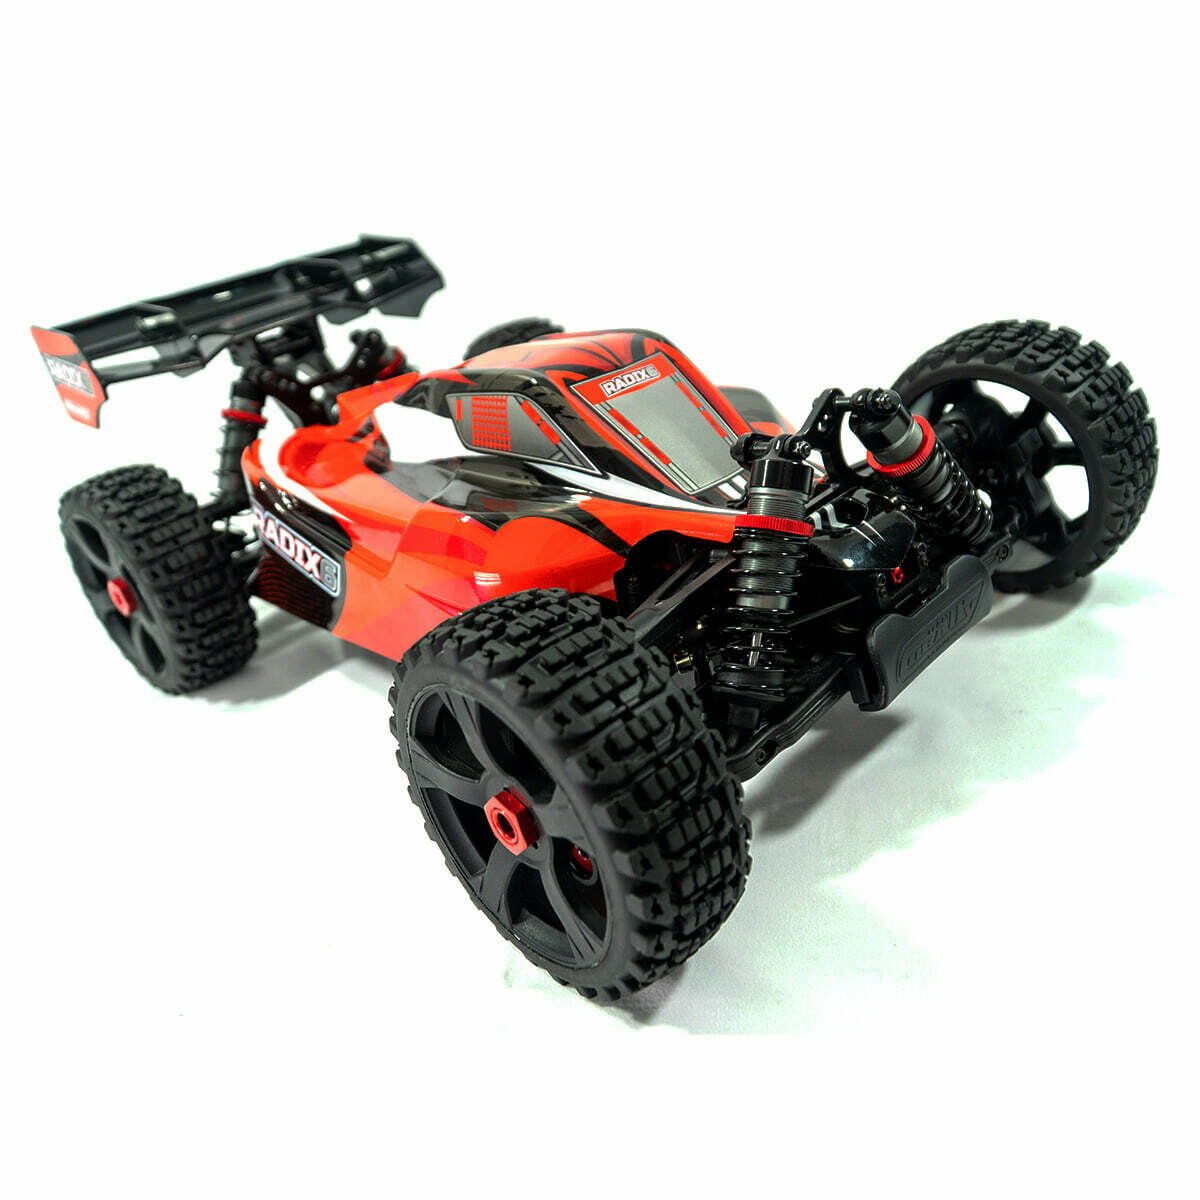 Corally 1/8 Radix XP 4WD 6S Brushless RTR (No Battery or Charger)